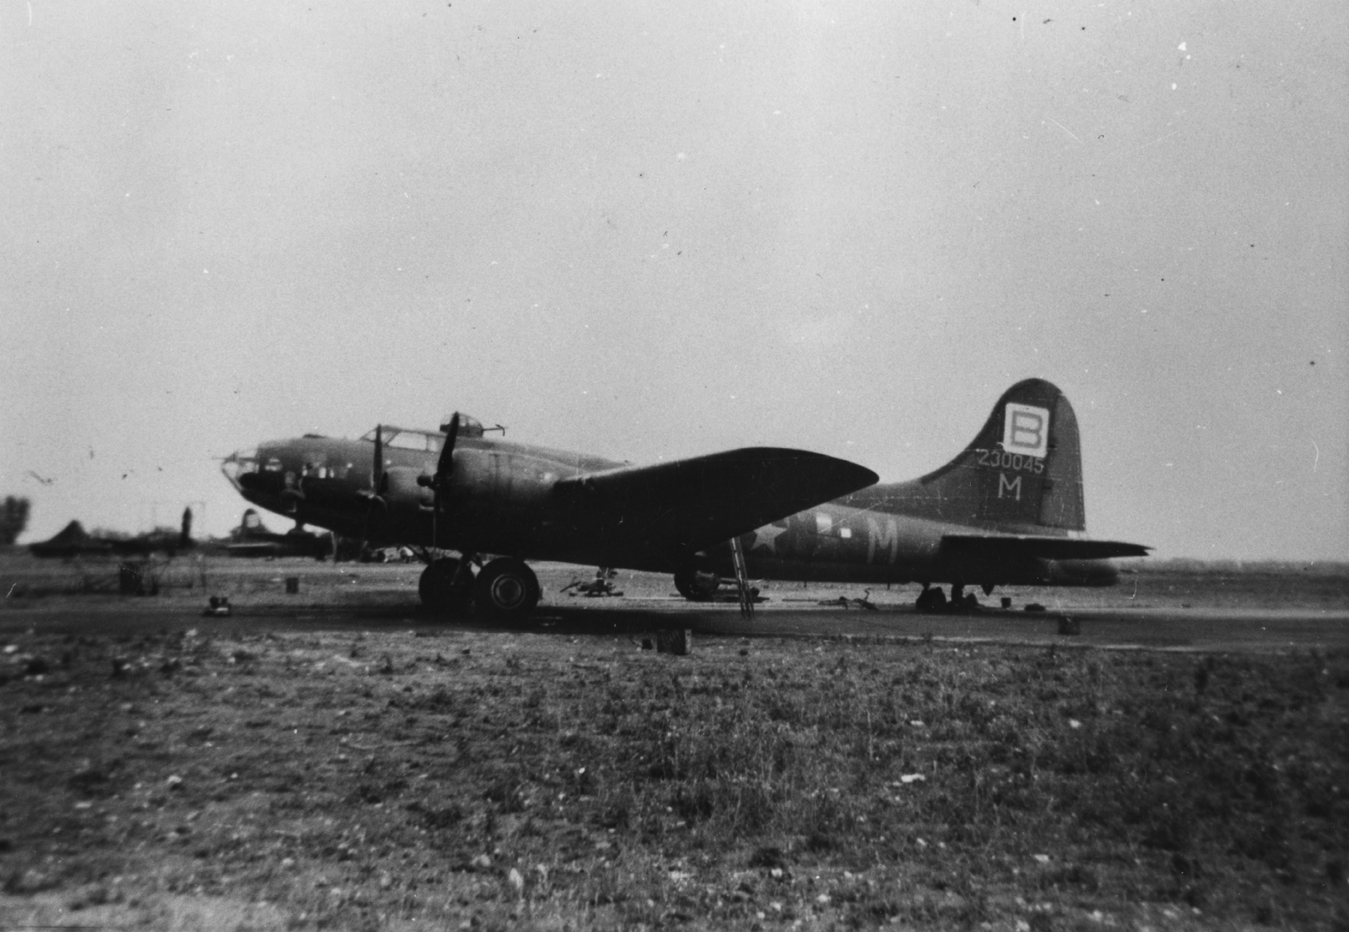 B-17 #42-30045 / She's My Gal aka Fight'n-n-Bit'n